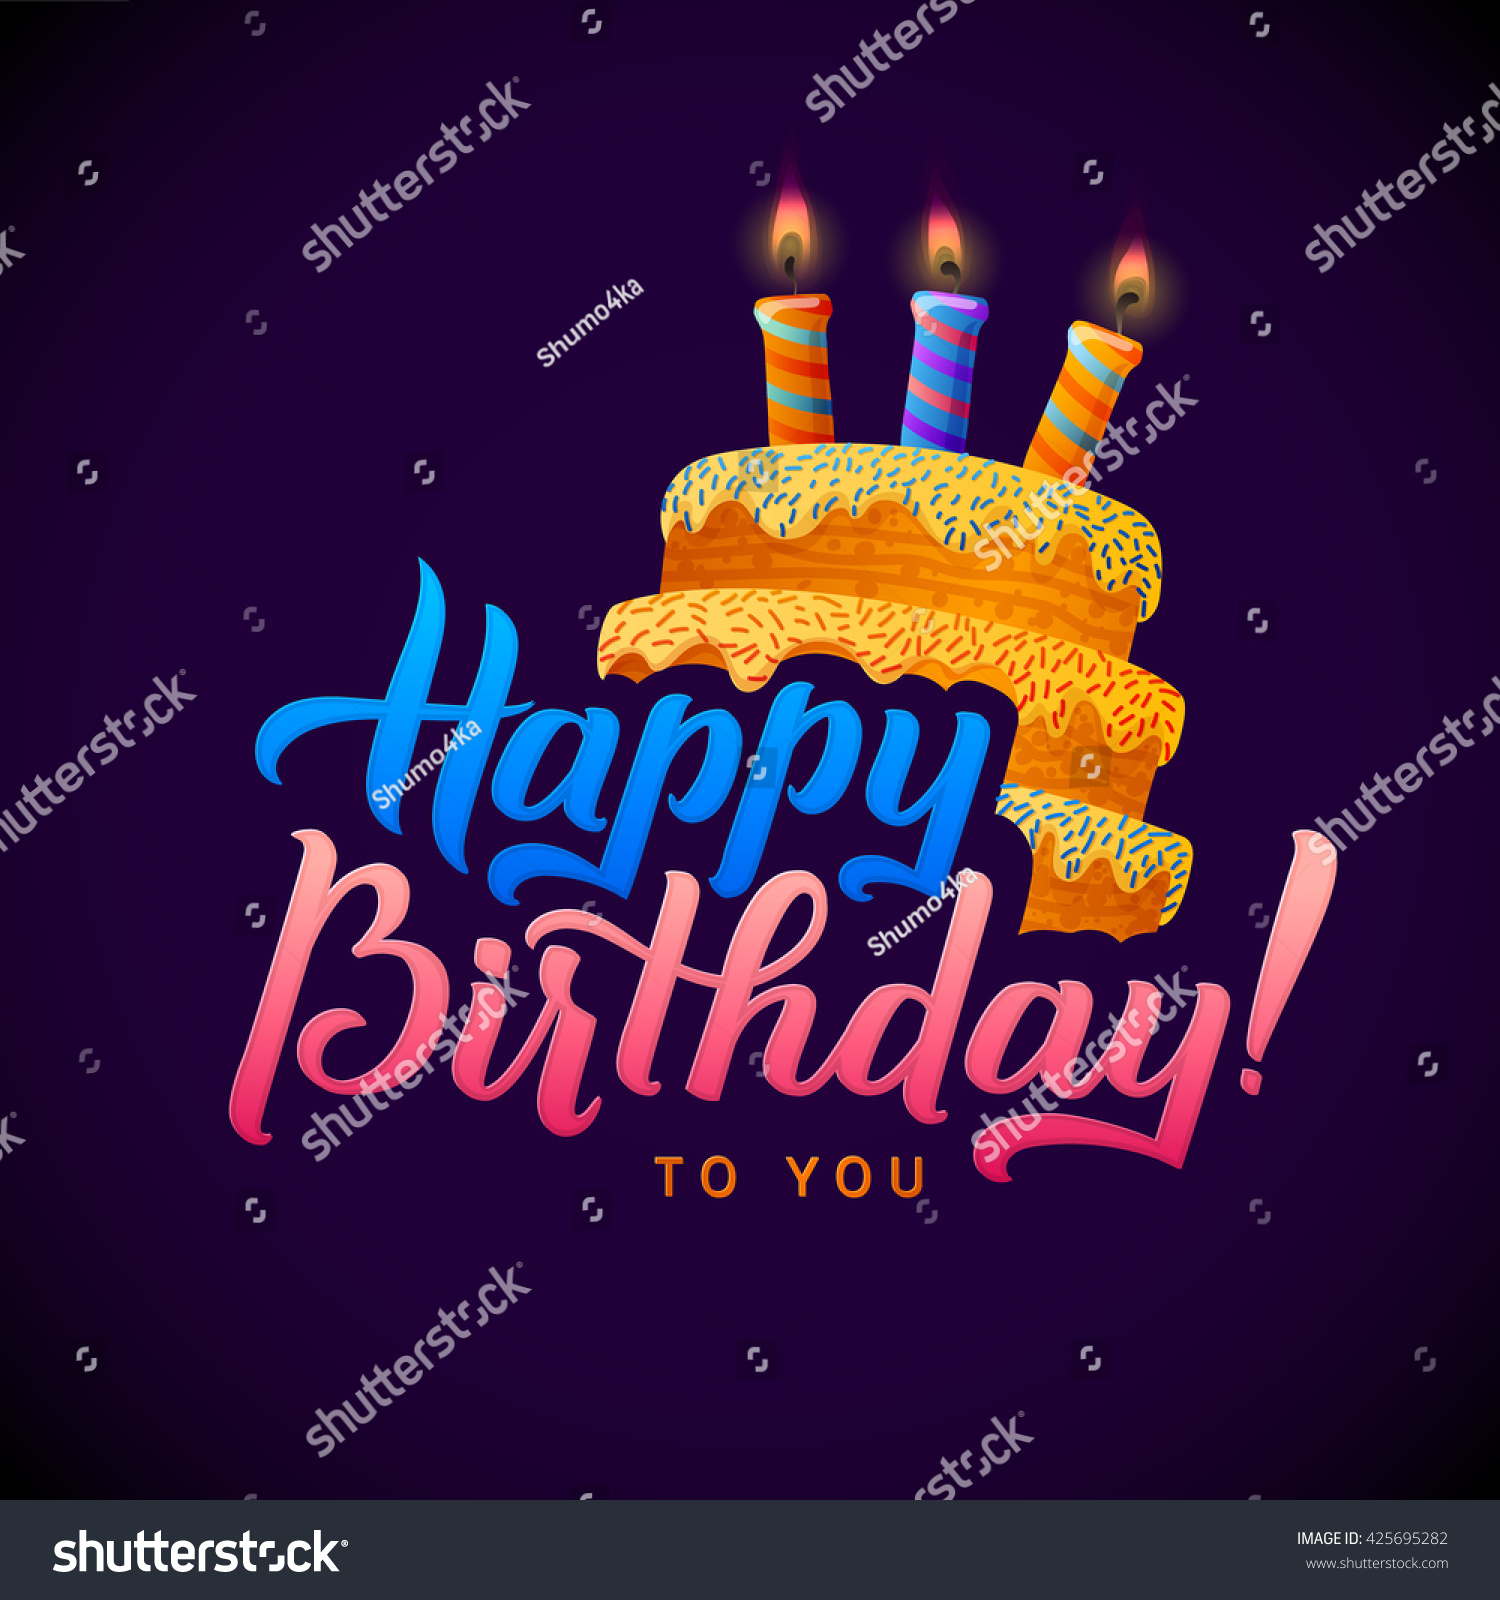 Birthday Card Design With Candle Lights On Cake Happy Background Candles